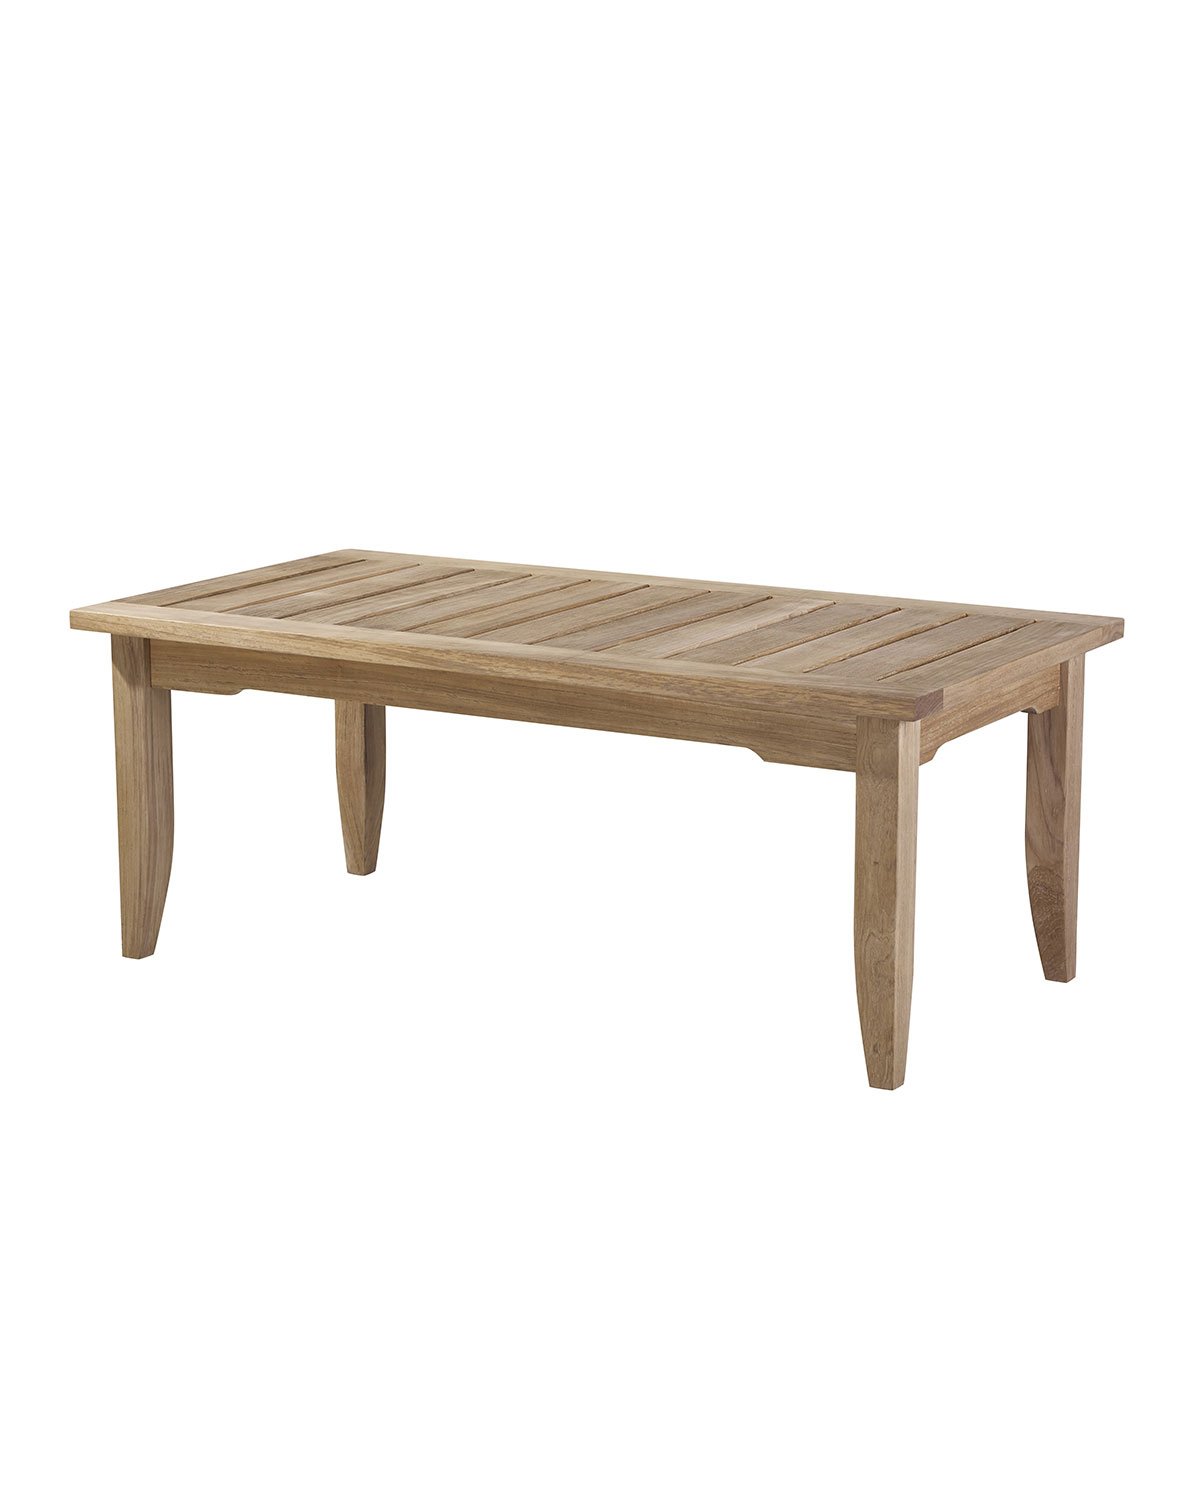 Neiman_marcus Edgewood Rectangular Outdoor Coffee Table